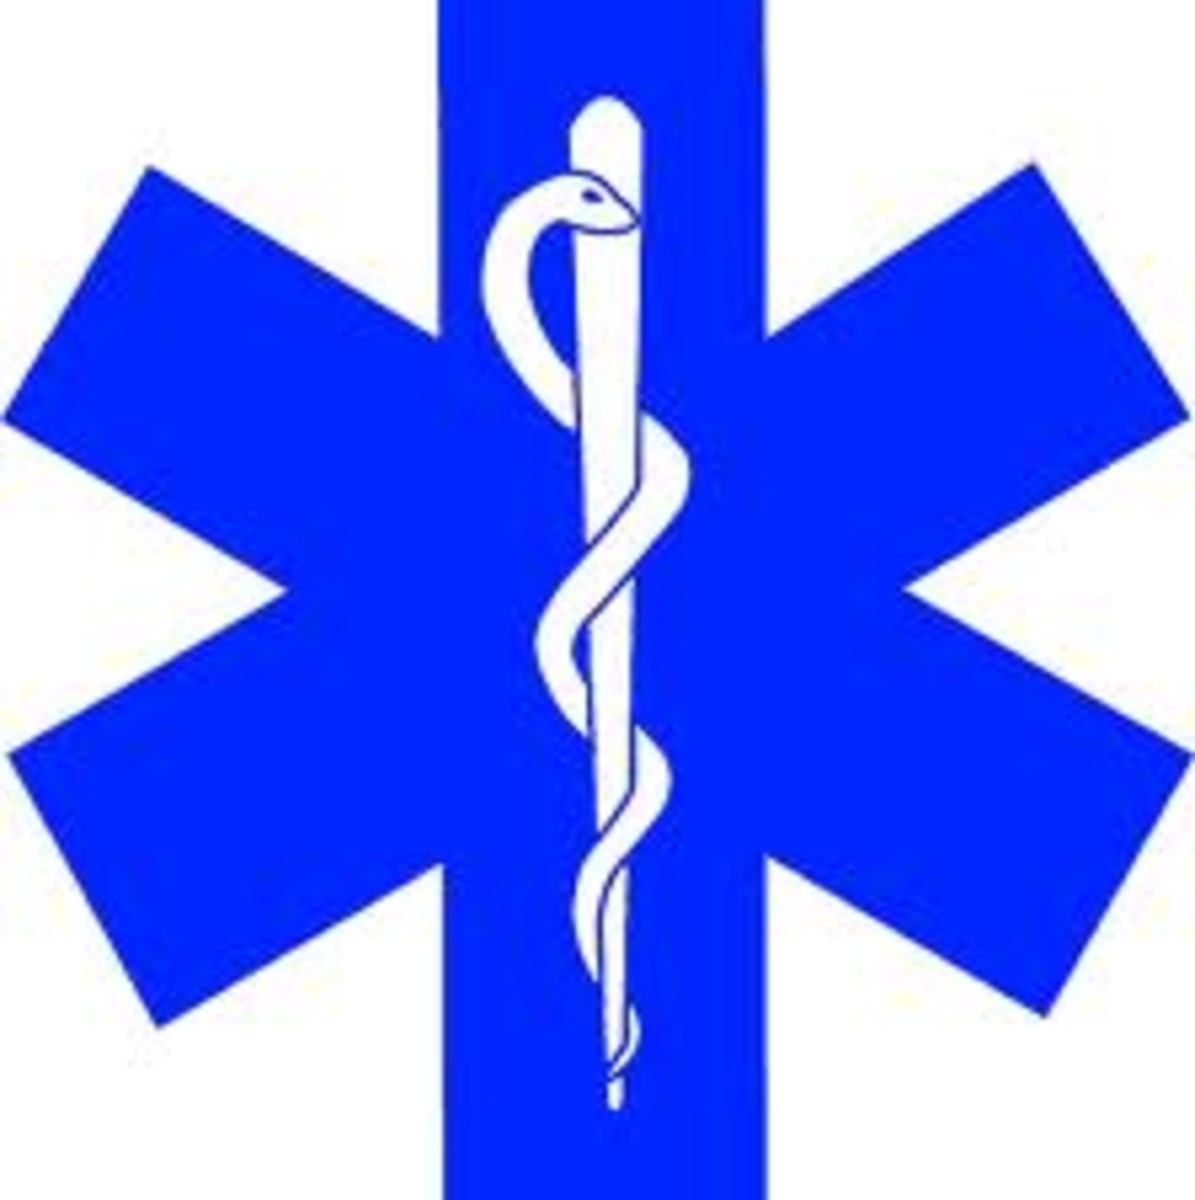 St.John's 666 symbol, used by the Emergency Medical Services as their symbol. It is commonly seen on ambulances and paramedic badges. It is also called ' the star of life '